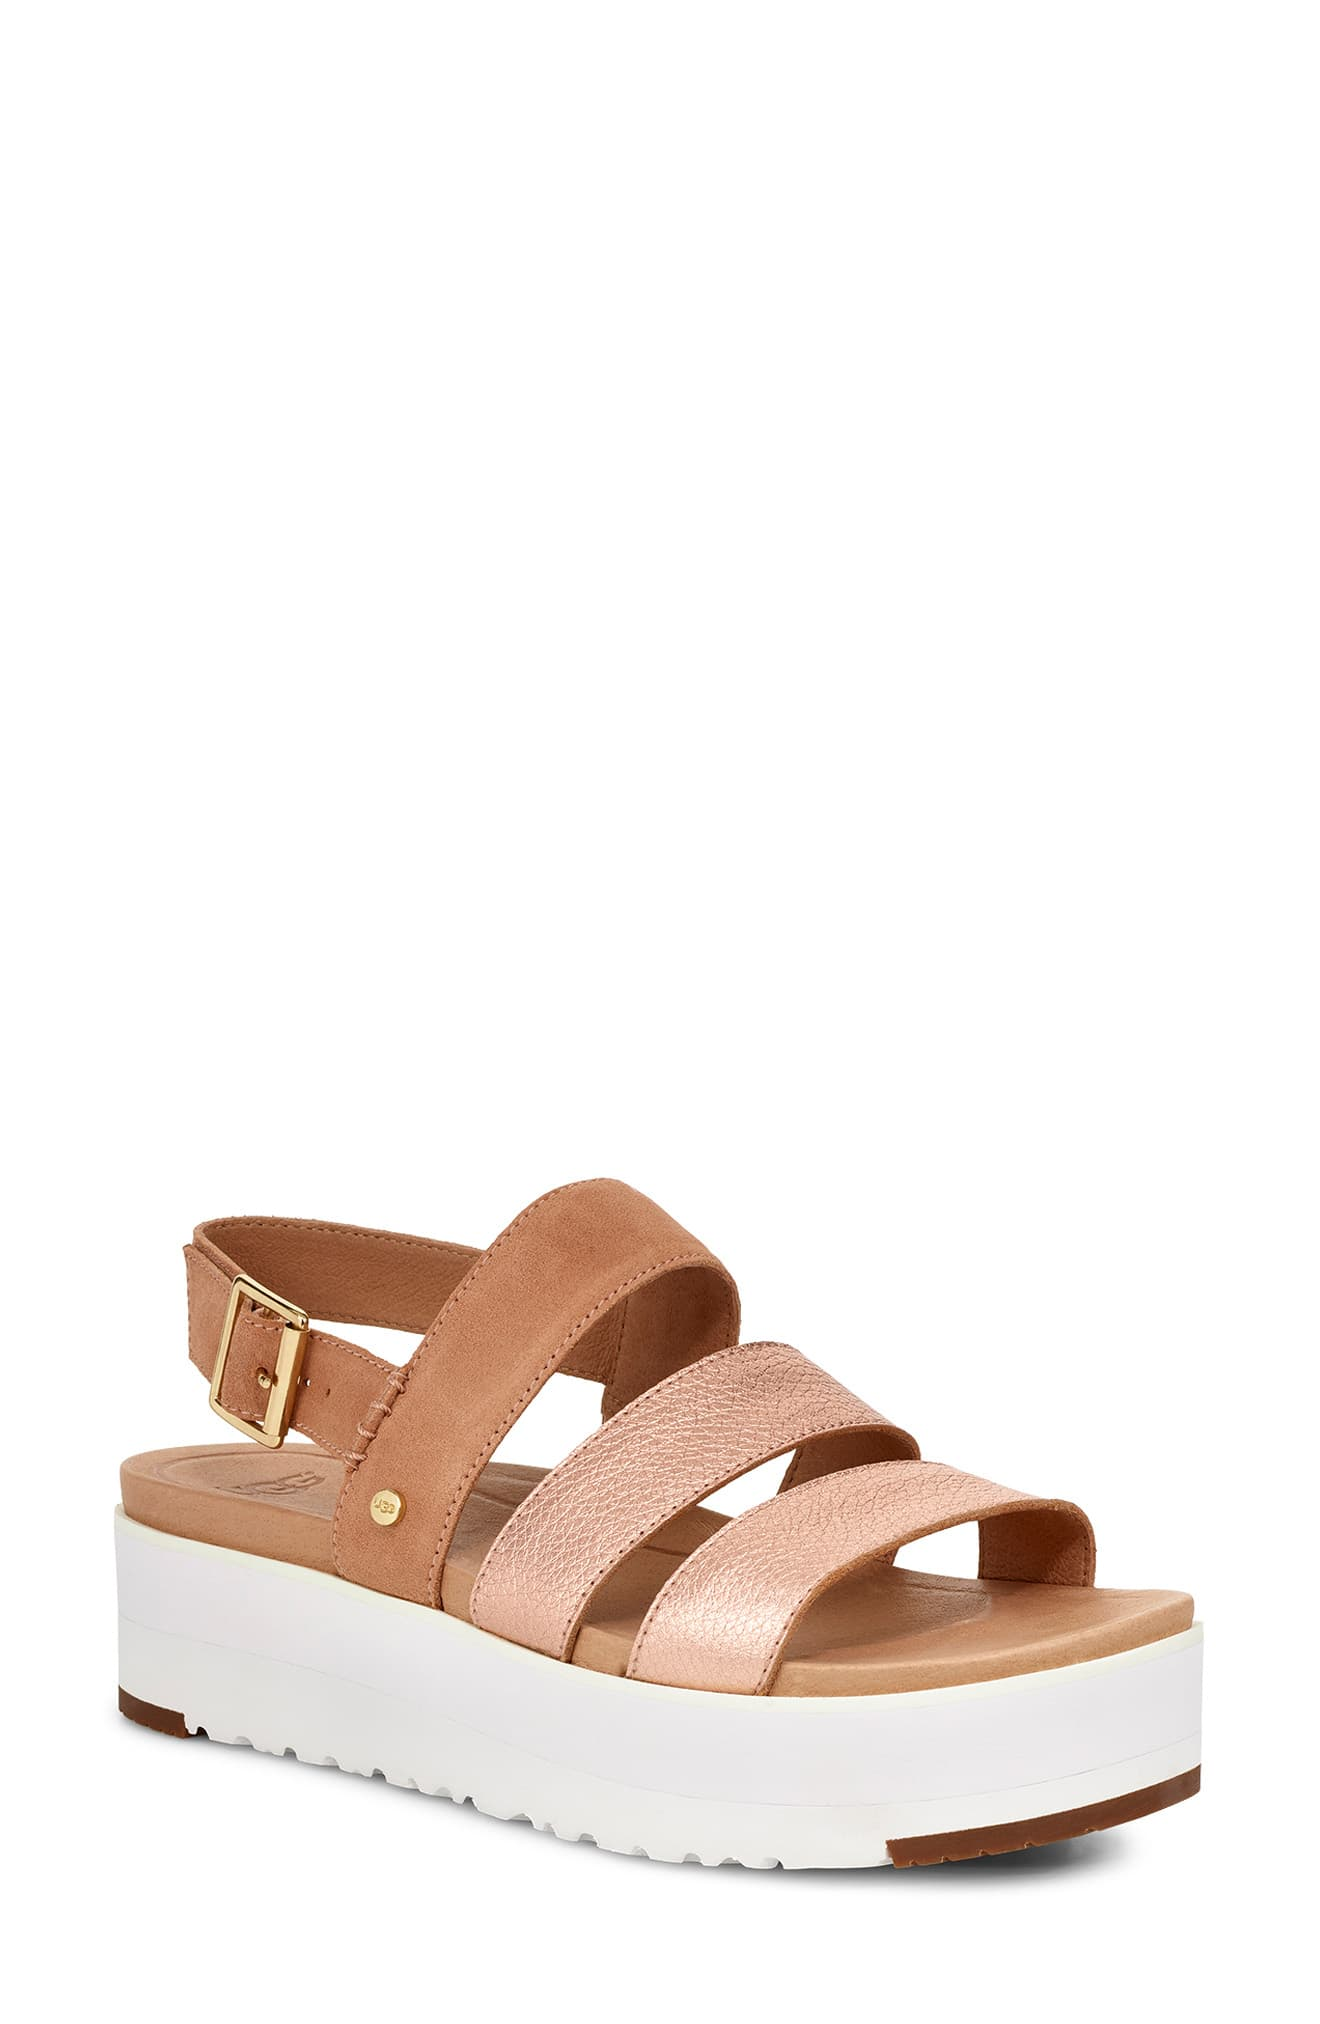 69f9827007d UGG Braelynn Flatform Sandal in 2019 | Products | Sandals, Uggs ...